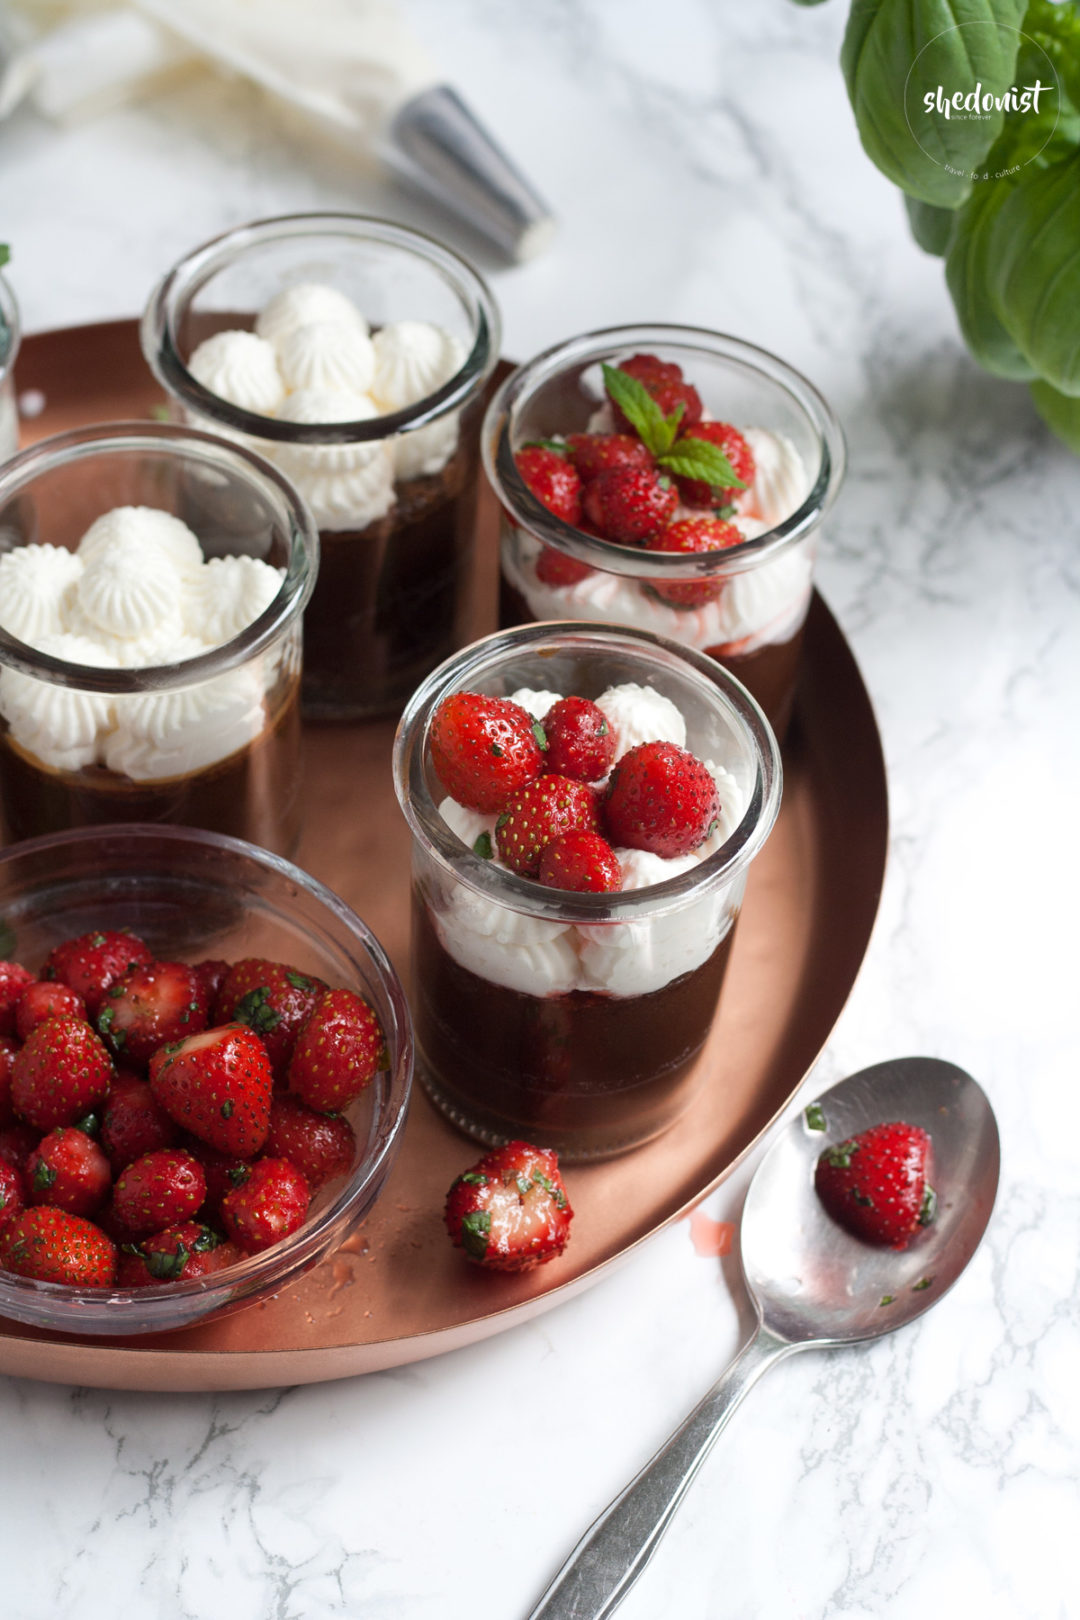 chocolate cream with strawberries